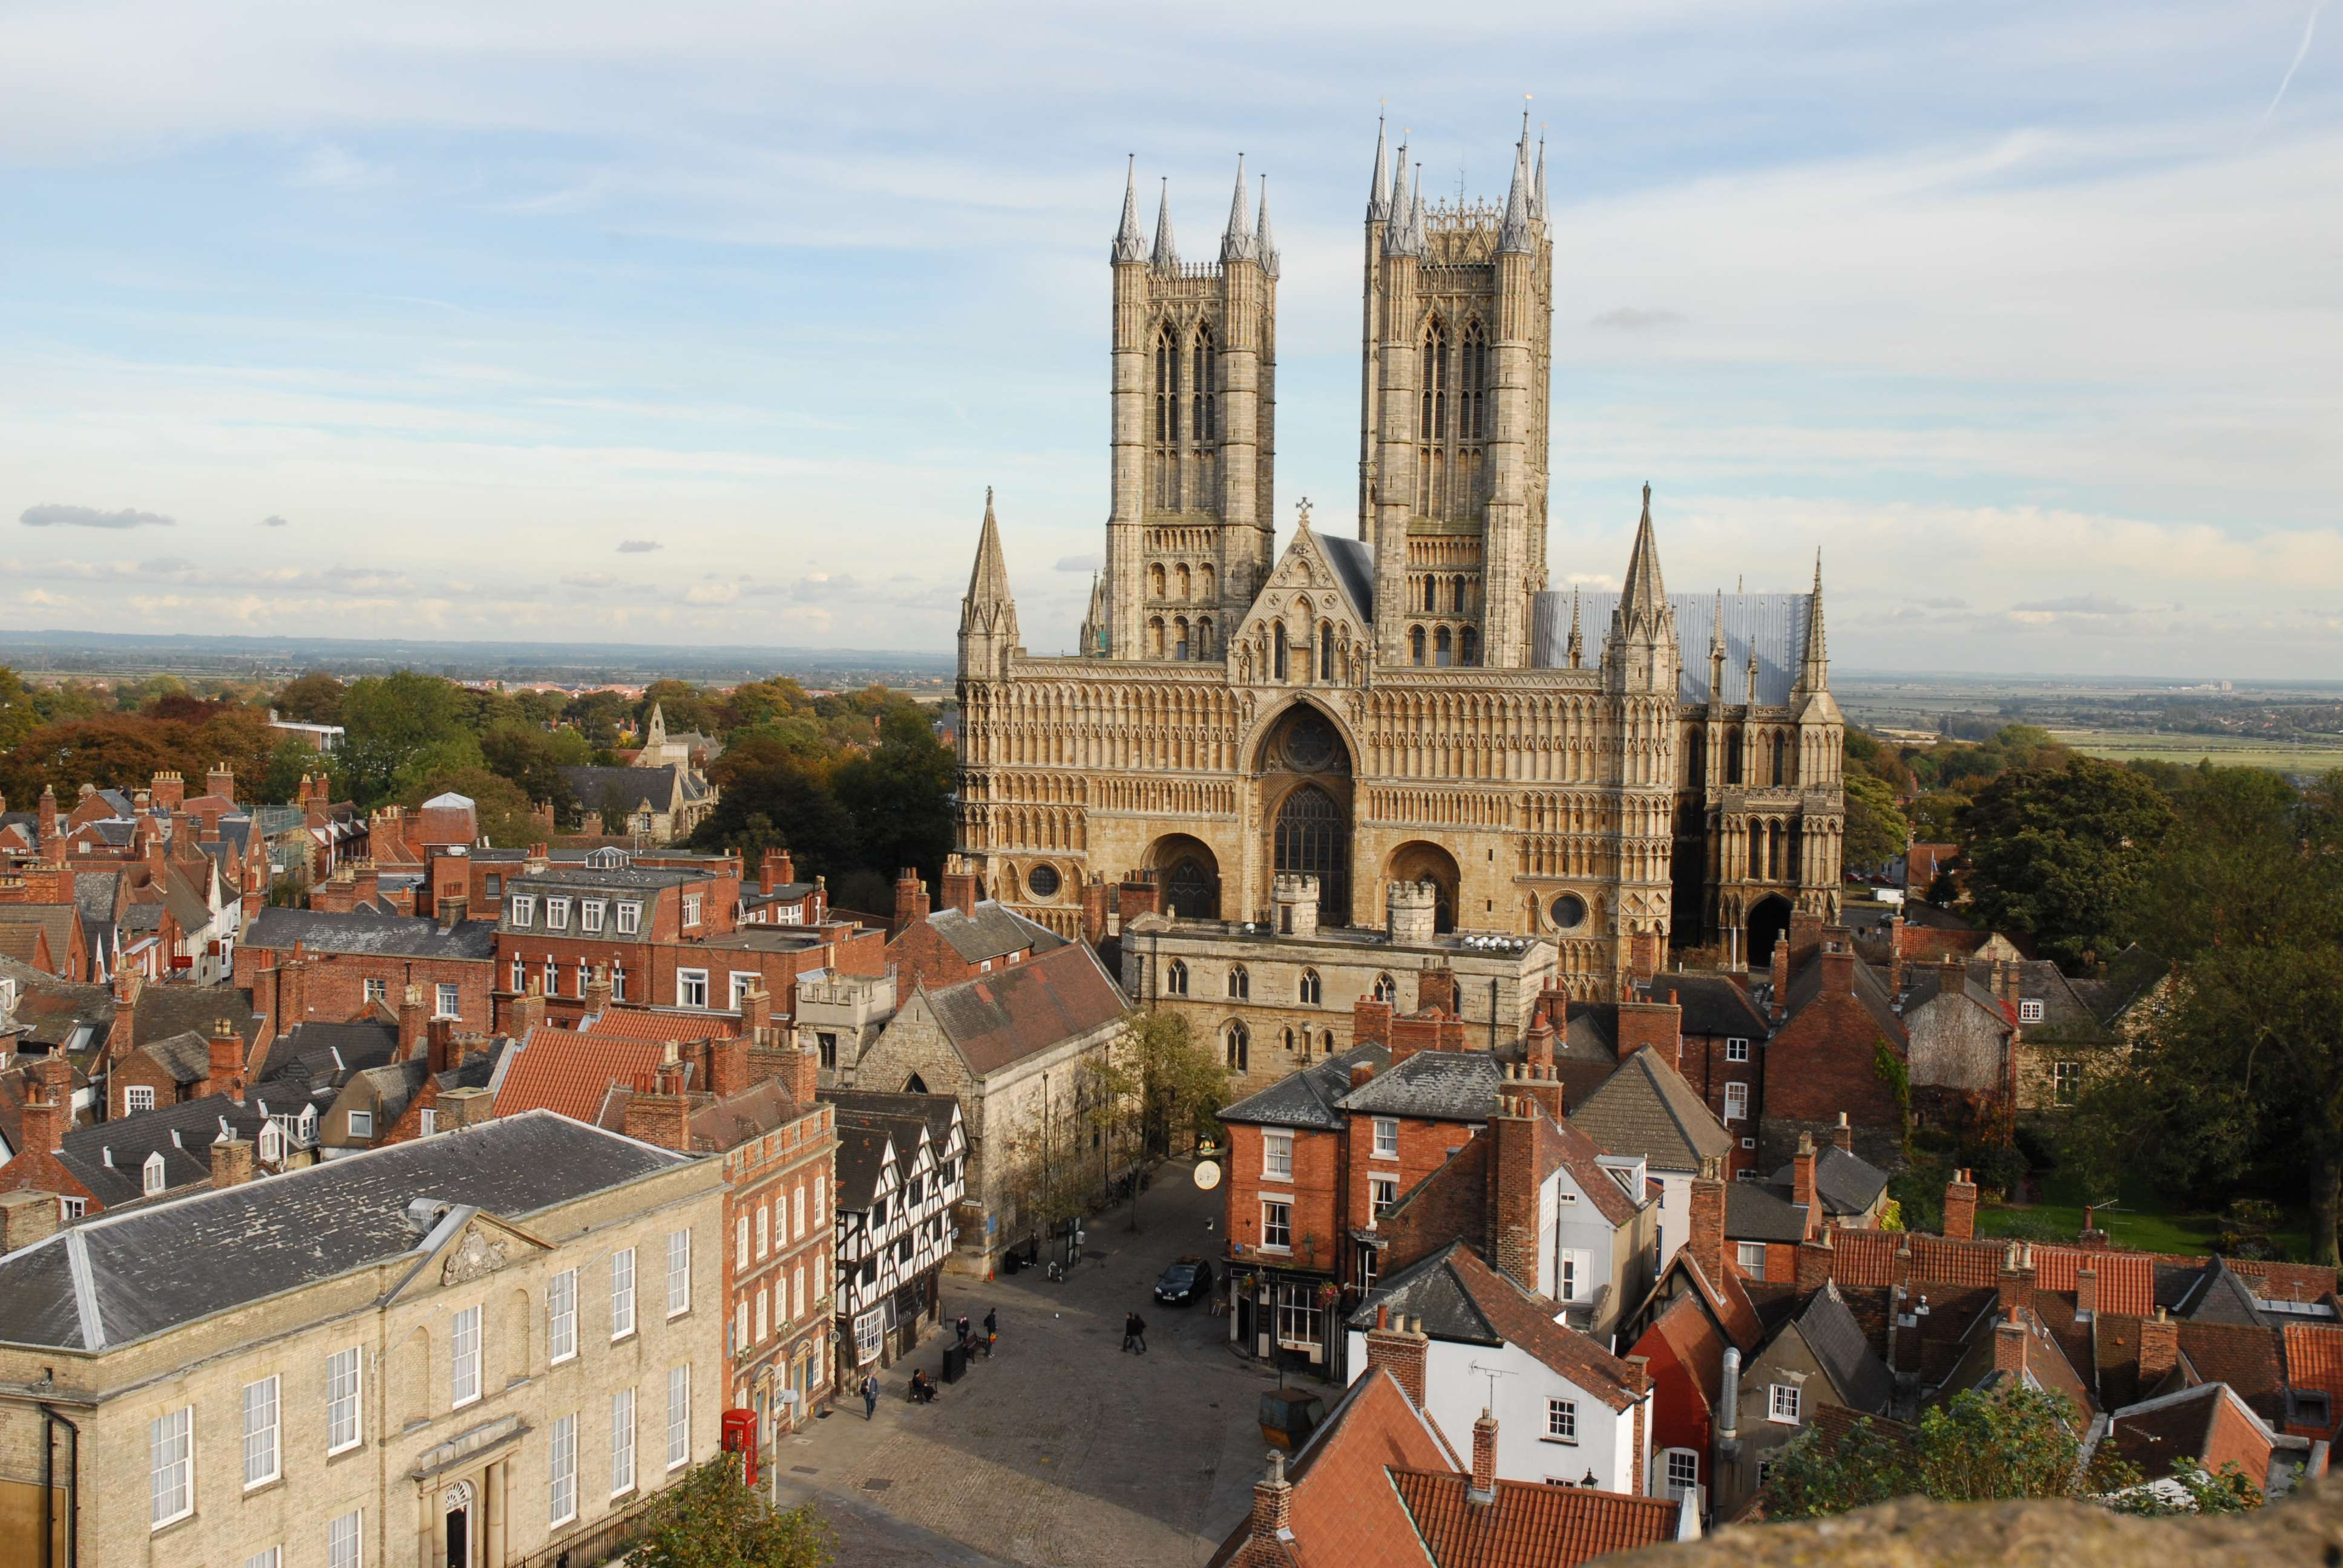 Lincoln Cathedral, the home of the one of the four surviving Magna Carta manuscripts on display in the unification event.